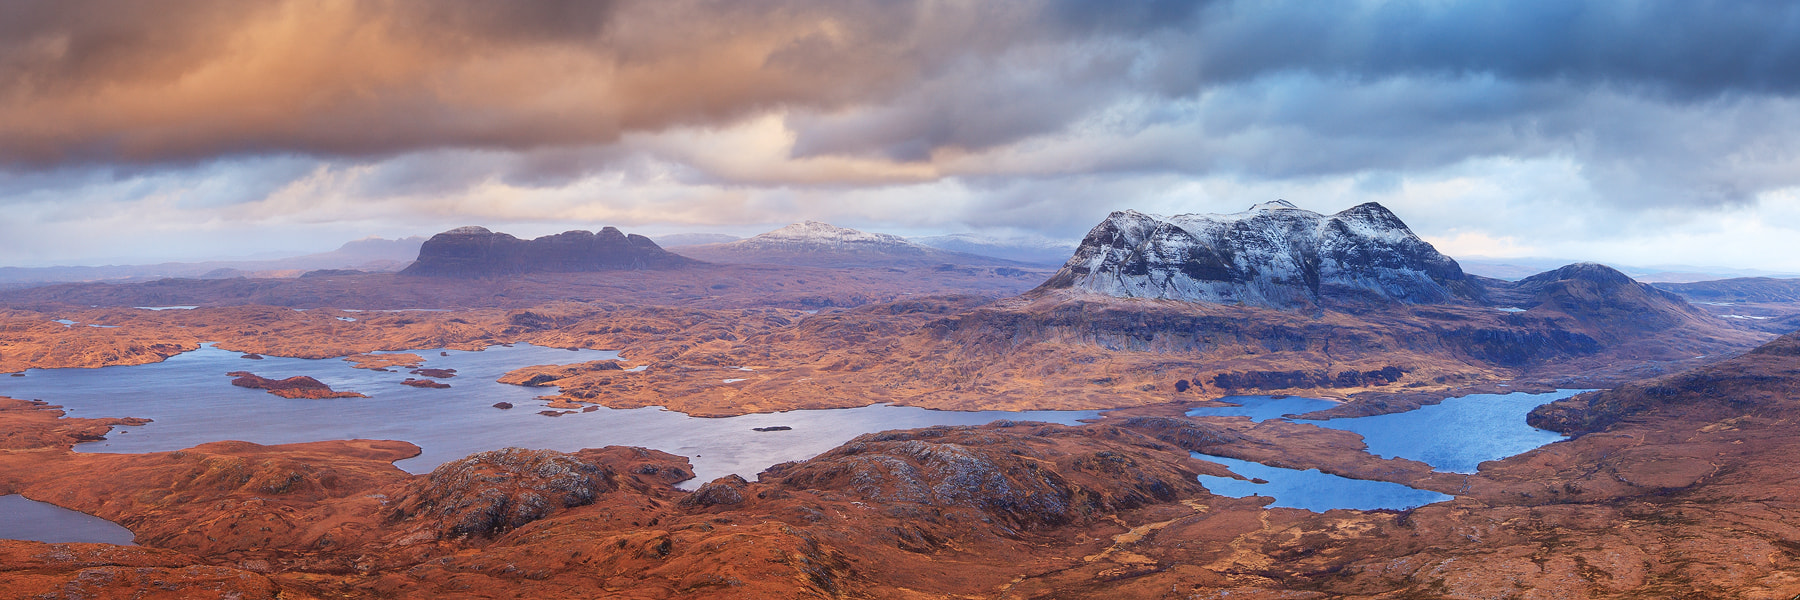 Photograph Suilven to Cul Mor by stephen sellman on 500px